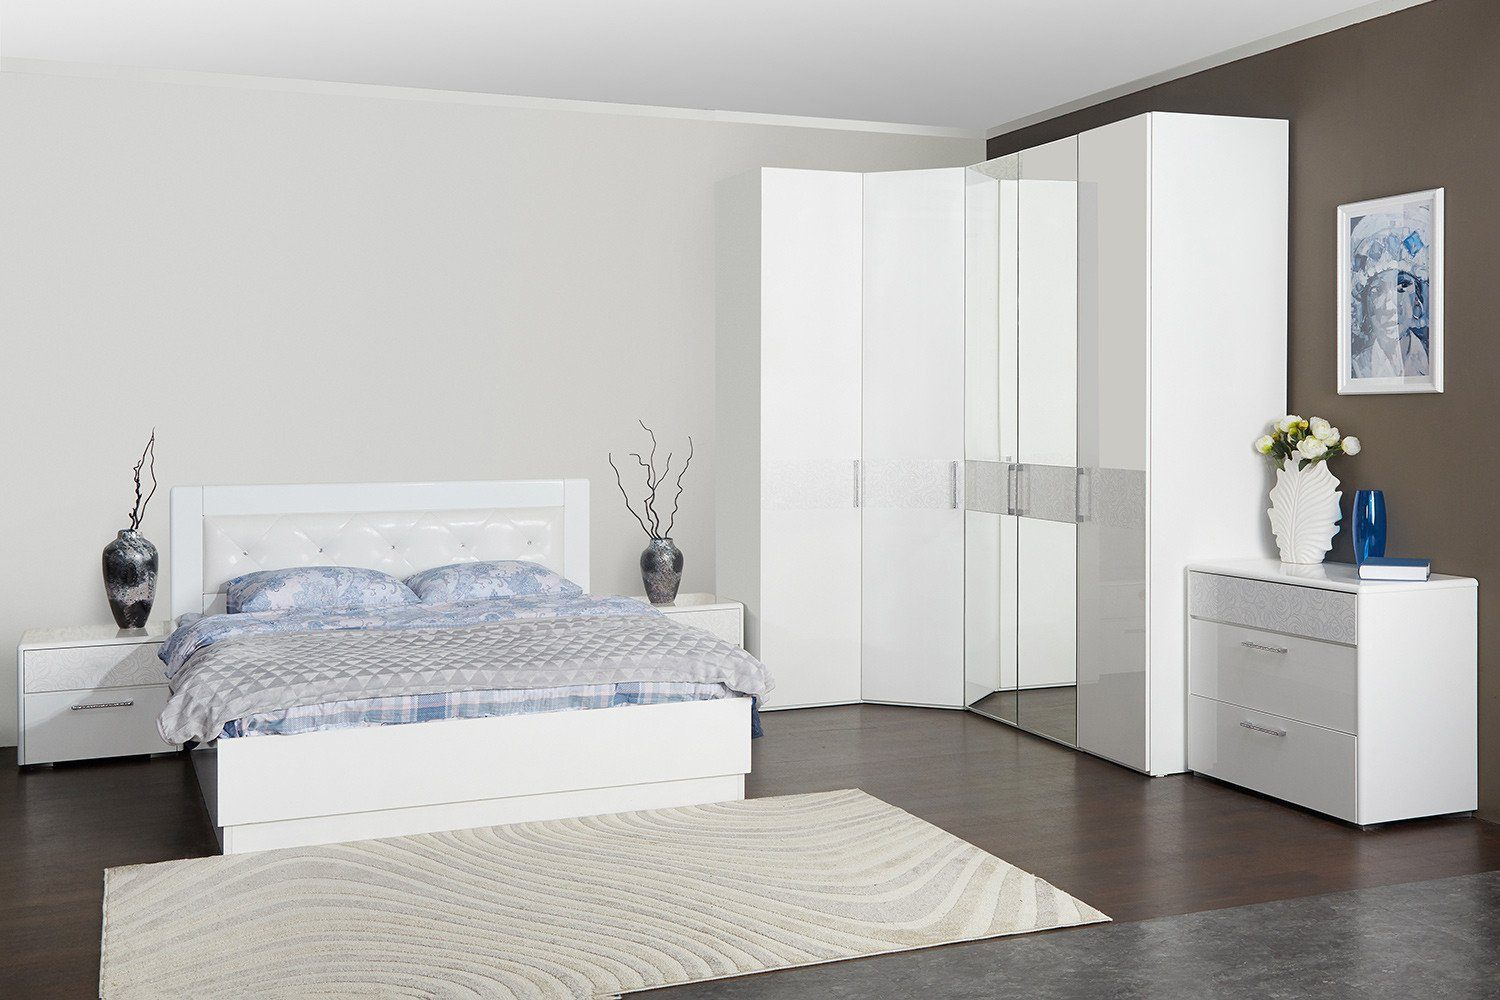 Modular corner bedroom furniture set in light tones